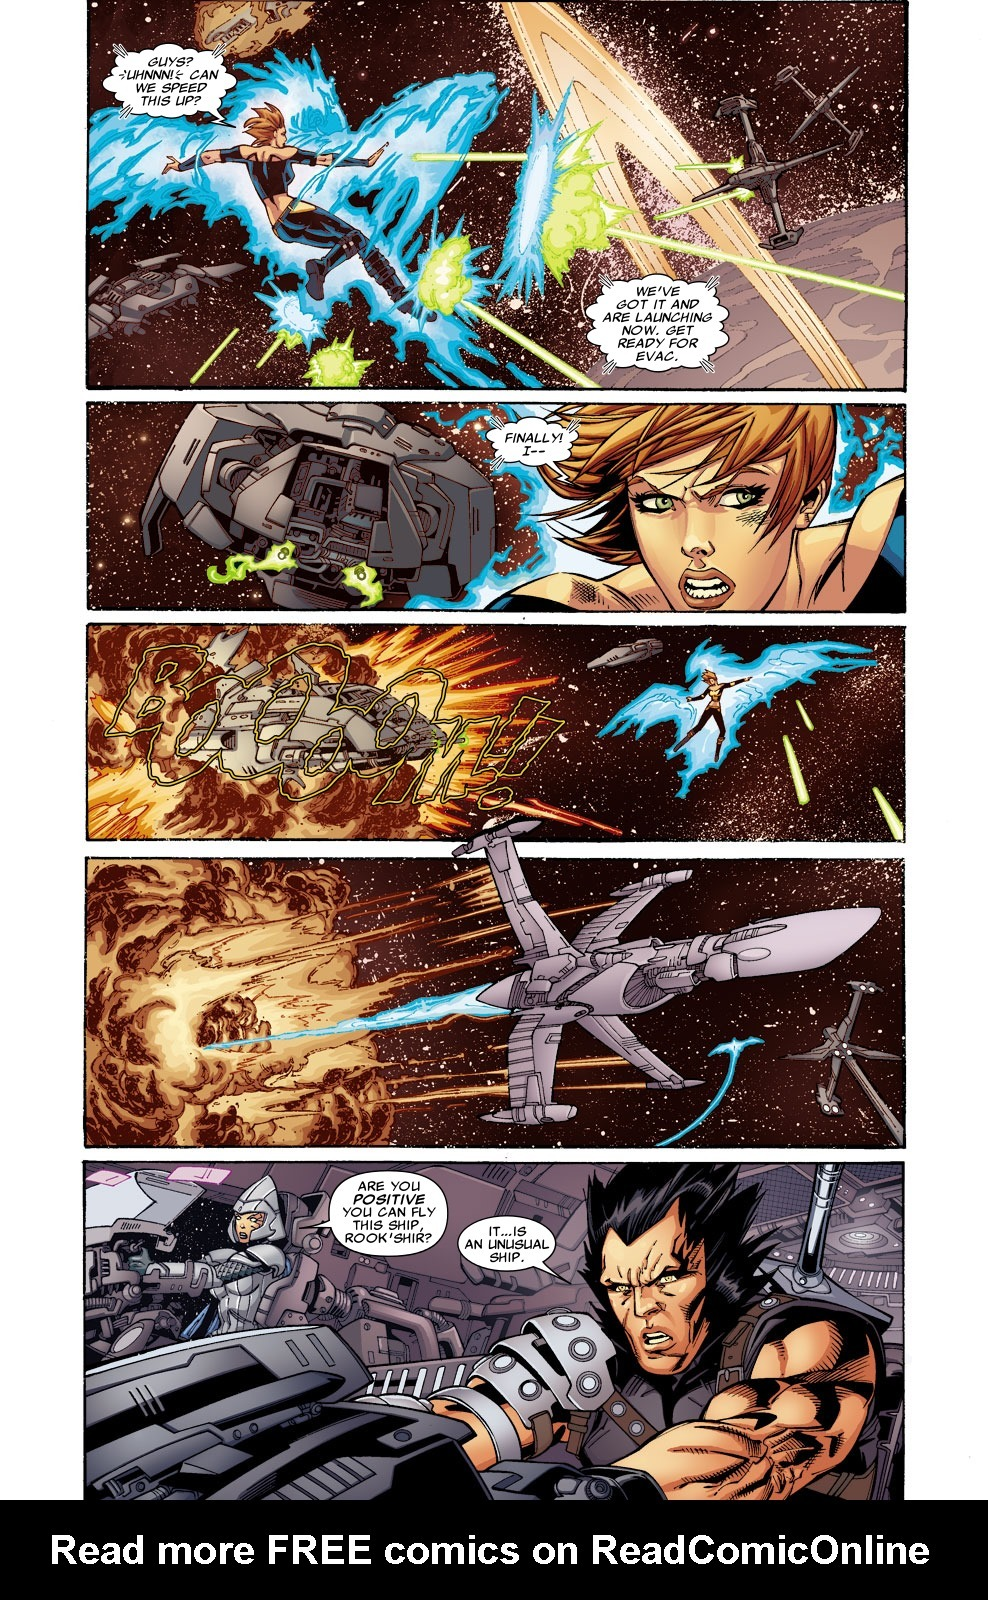 Shields from defense ships while Lilandra and Rook'shir make their escape